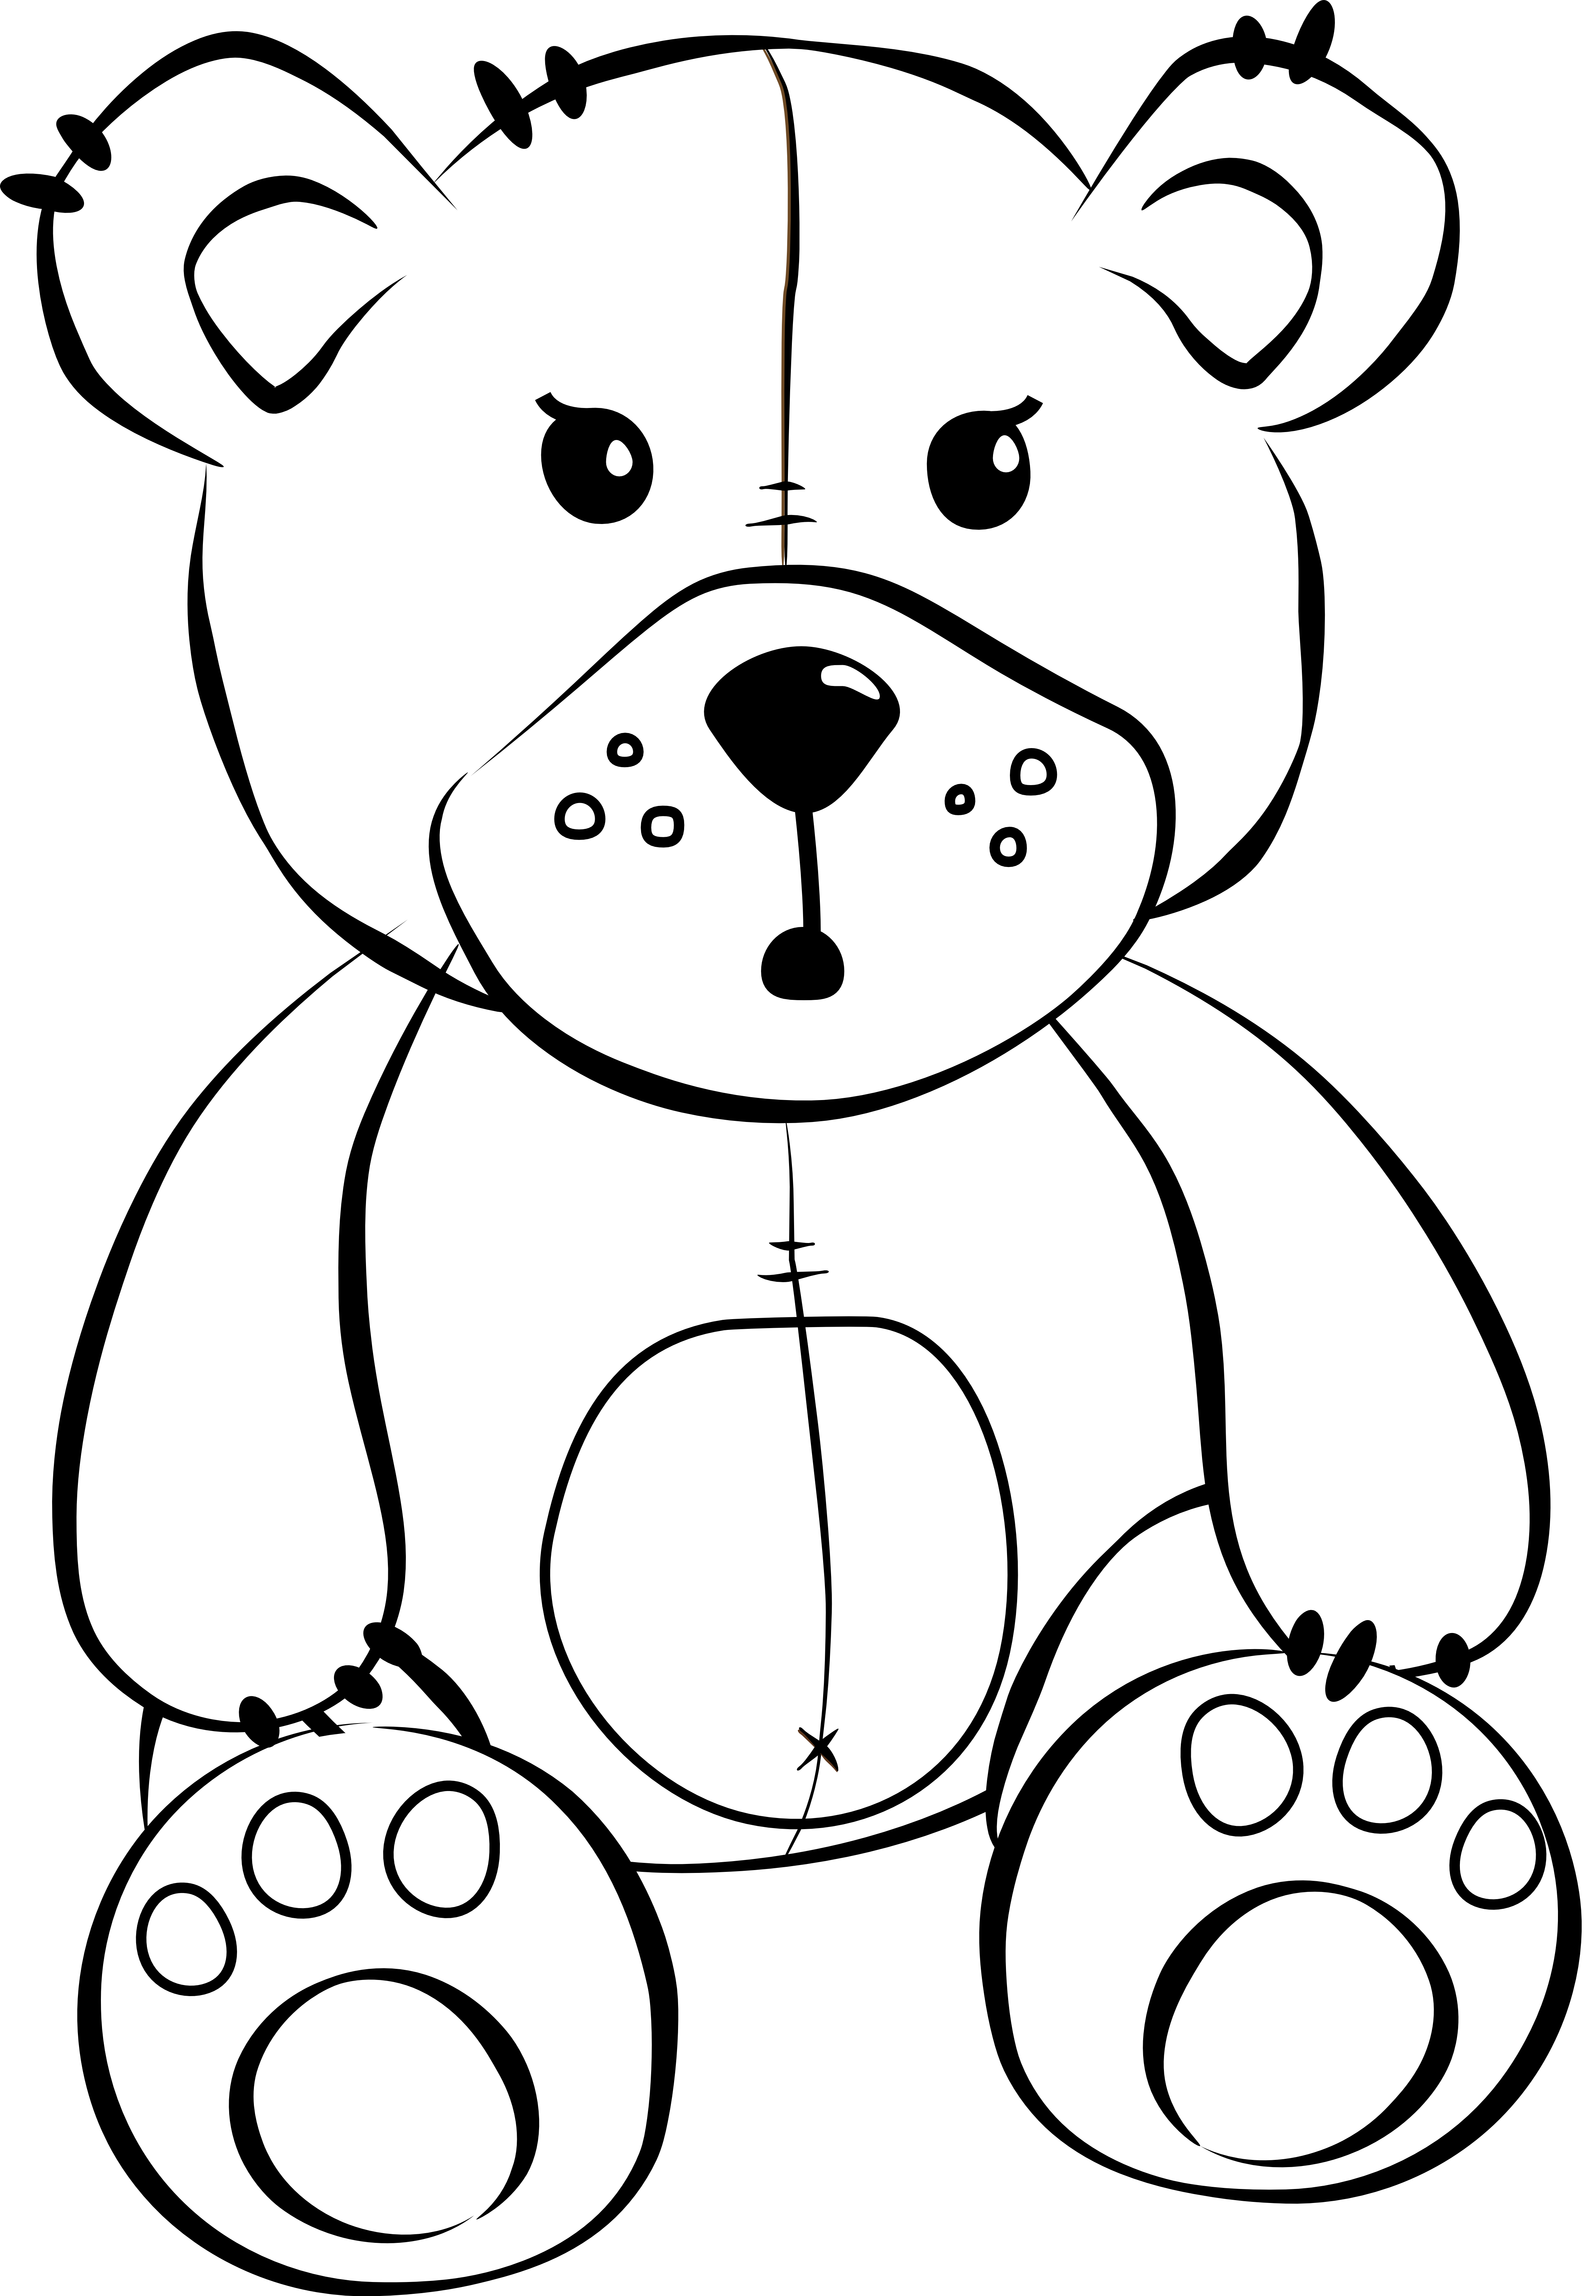 Free Bear Png Black And White Free Bear Black And White Png Transparent Images 8078 Pngio